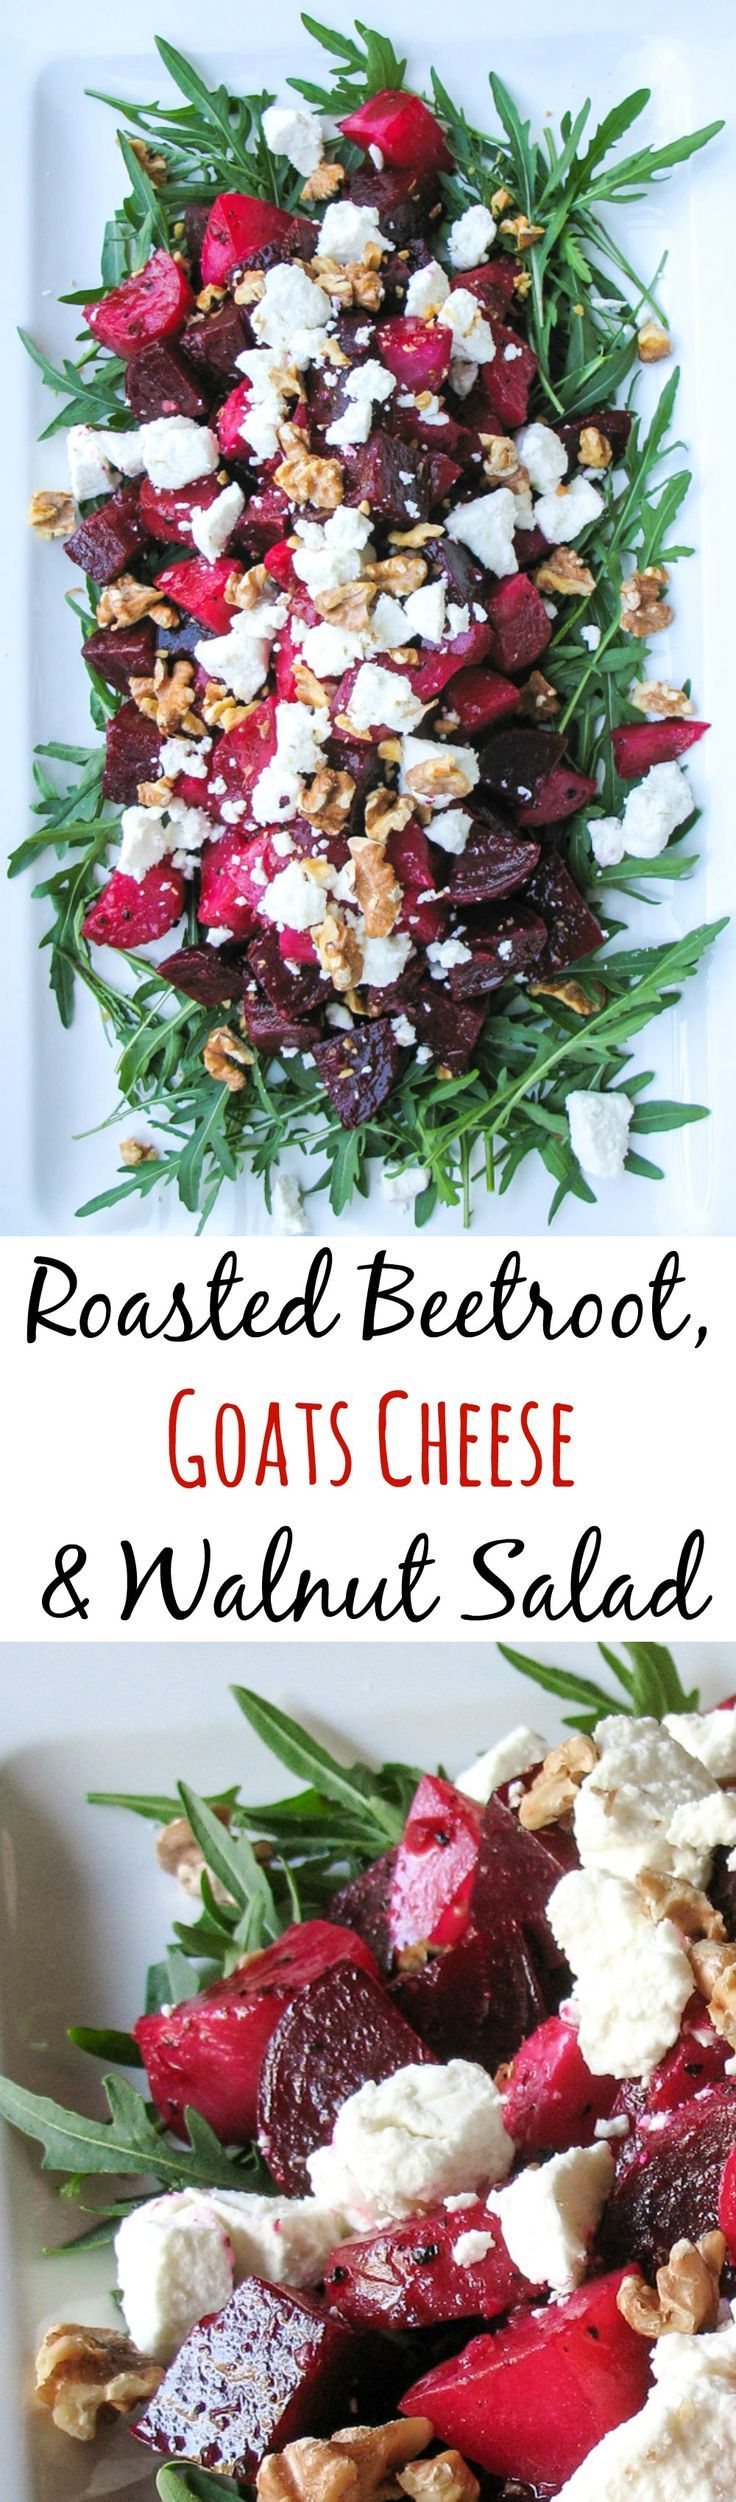 Roasted Beetroot, Goats Cheese & Walnut Salad.  A Great main course salad.... - http://delectablesalads.com/roasted-beetroot-goats-cheese-walnut-salad-a-great-main-course-salad/ -